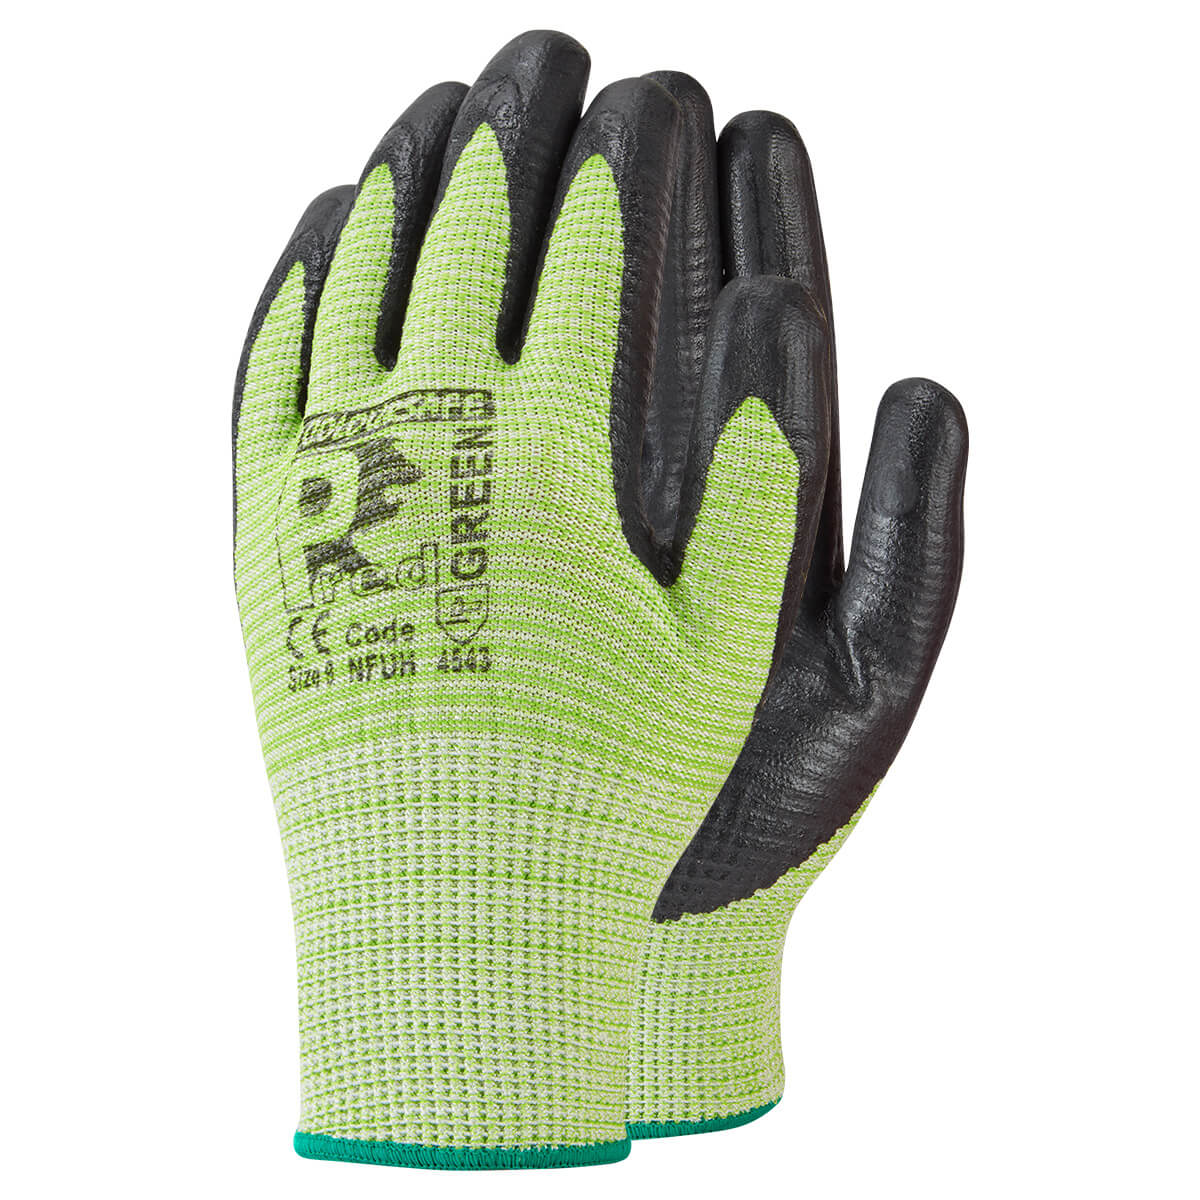 Cut 5 Nitrile Foam Ribbed Glove